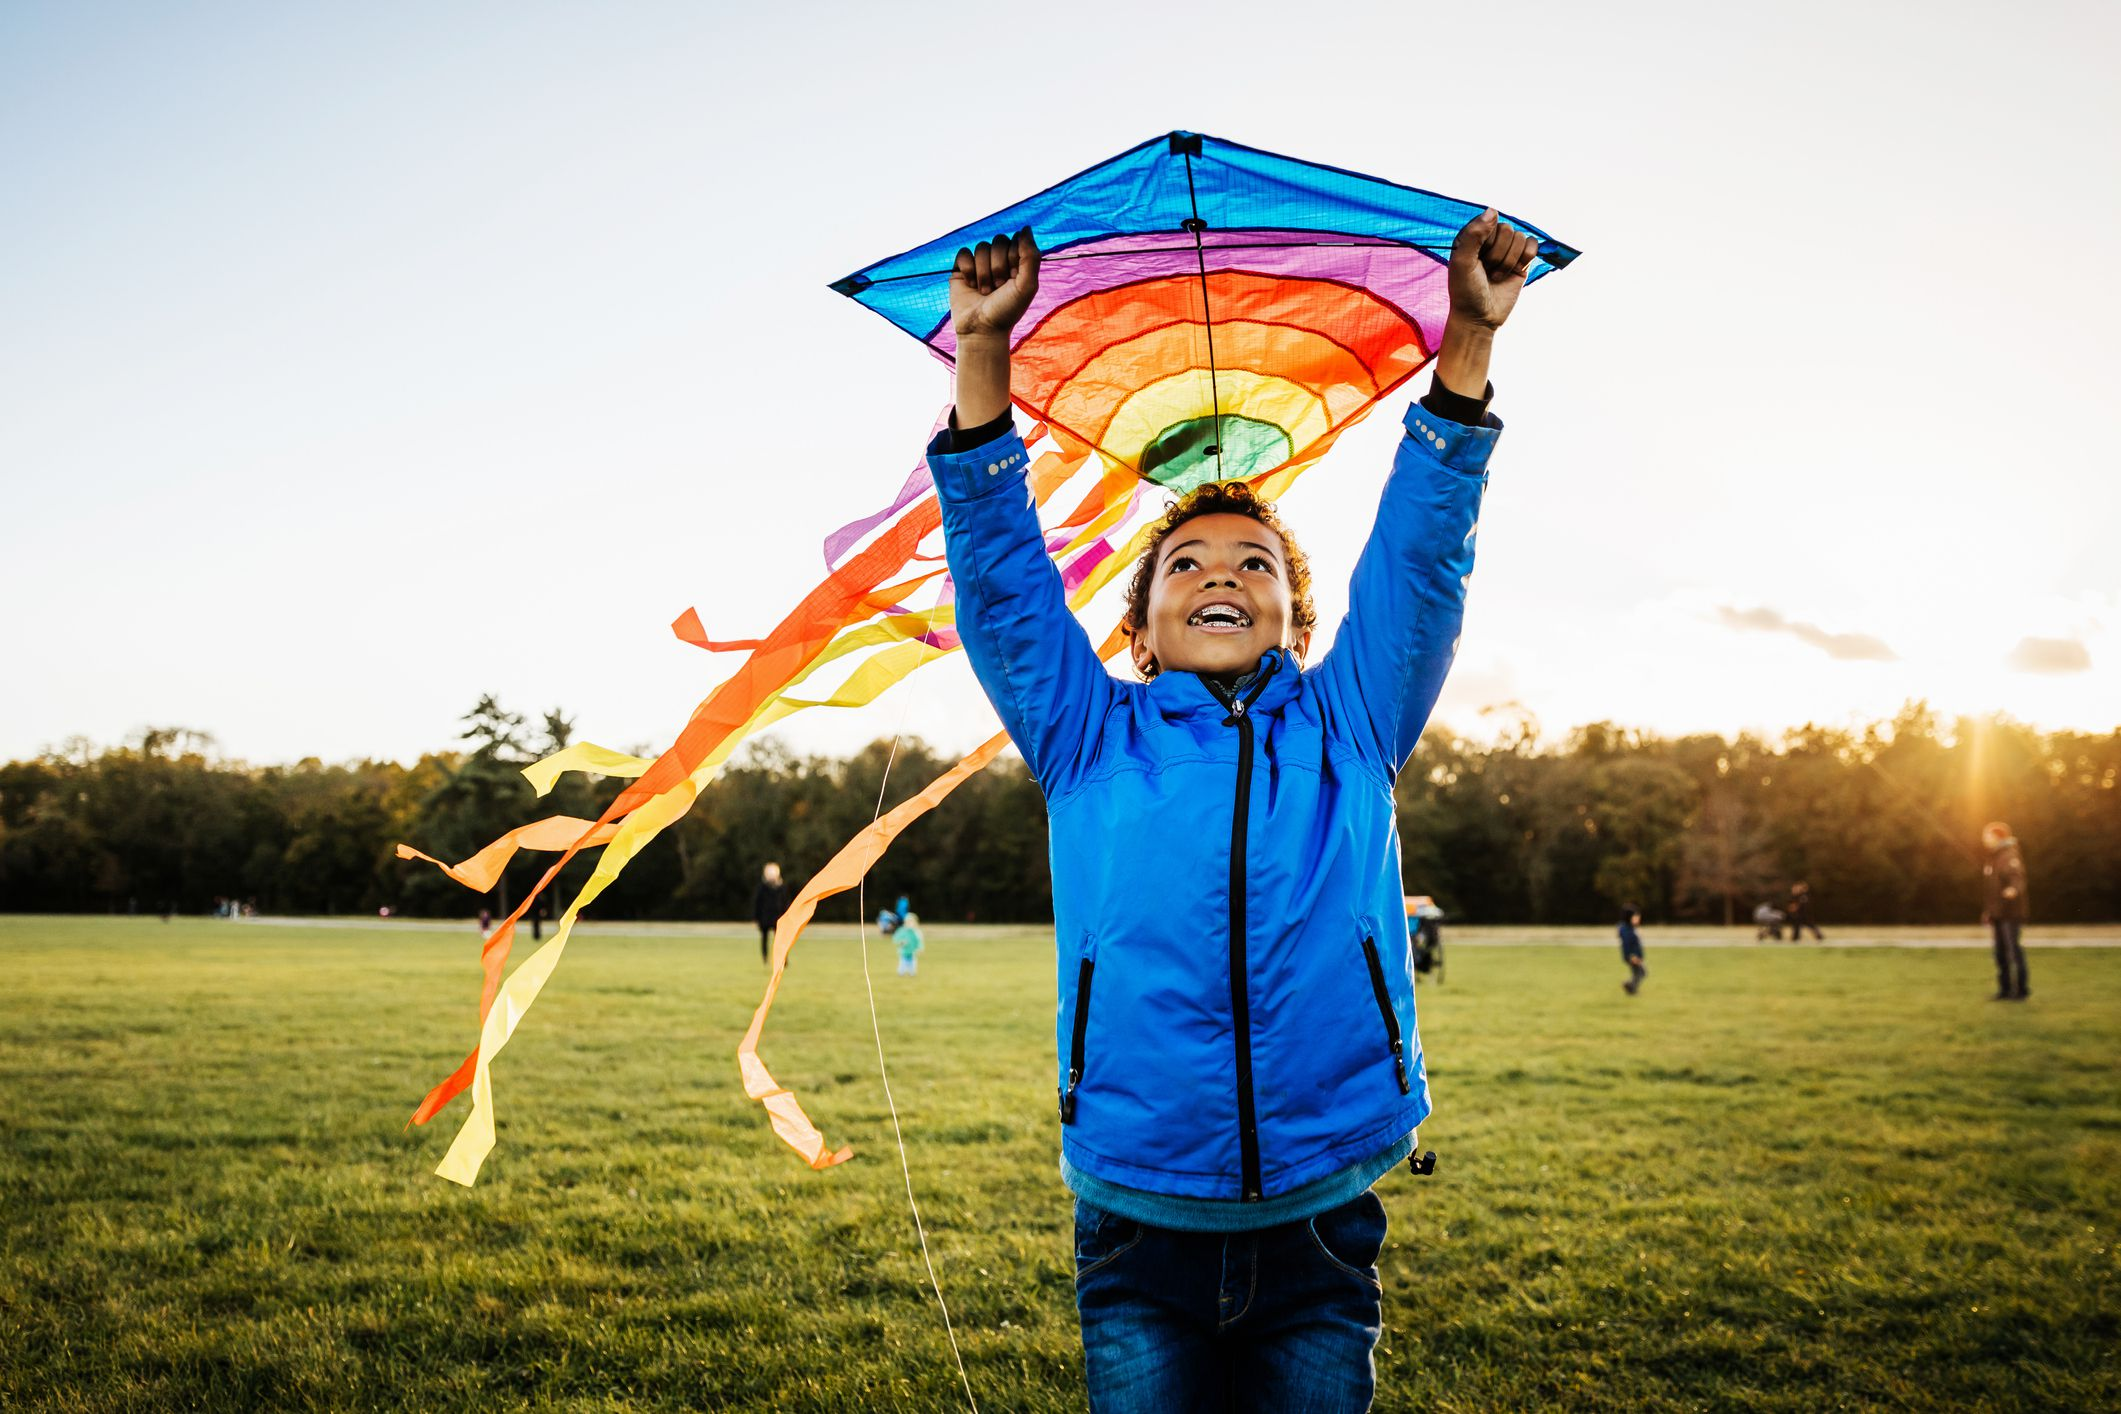 The 7 Best Kites For Windy Days In